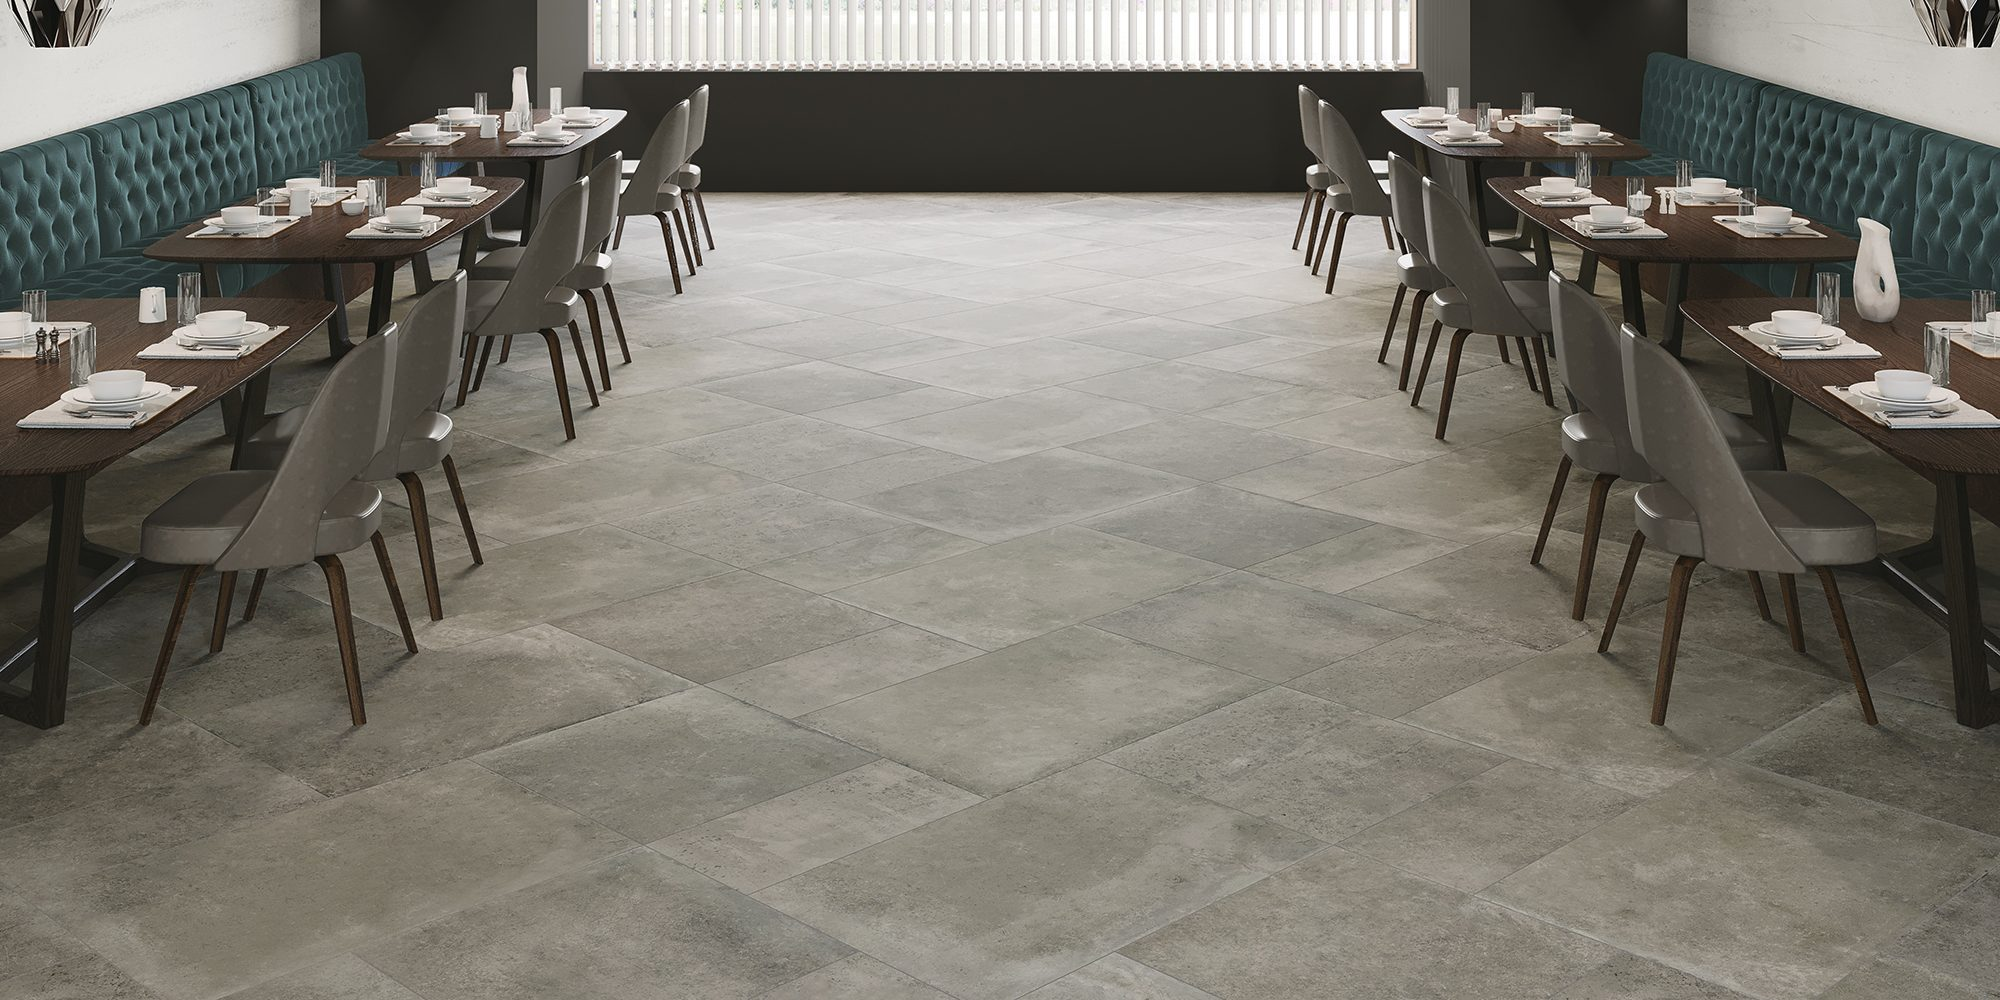 Salón Tectonic Grey 30x60, Tectonic Grey 60x60 y Tectonic Grey 60x90